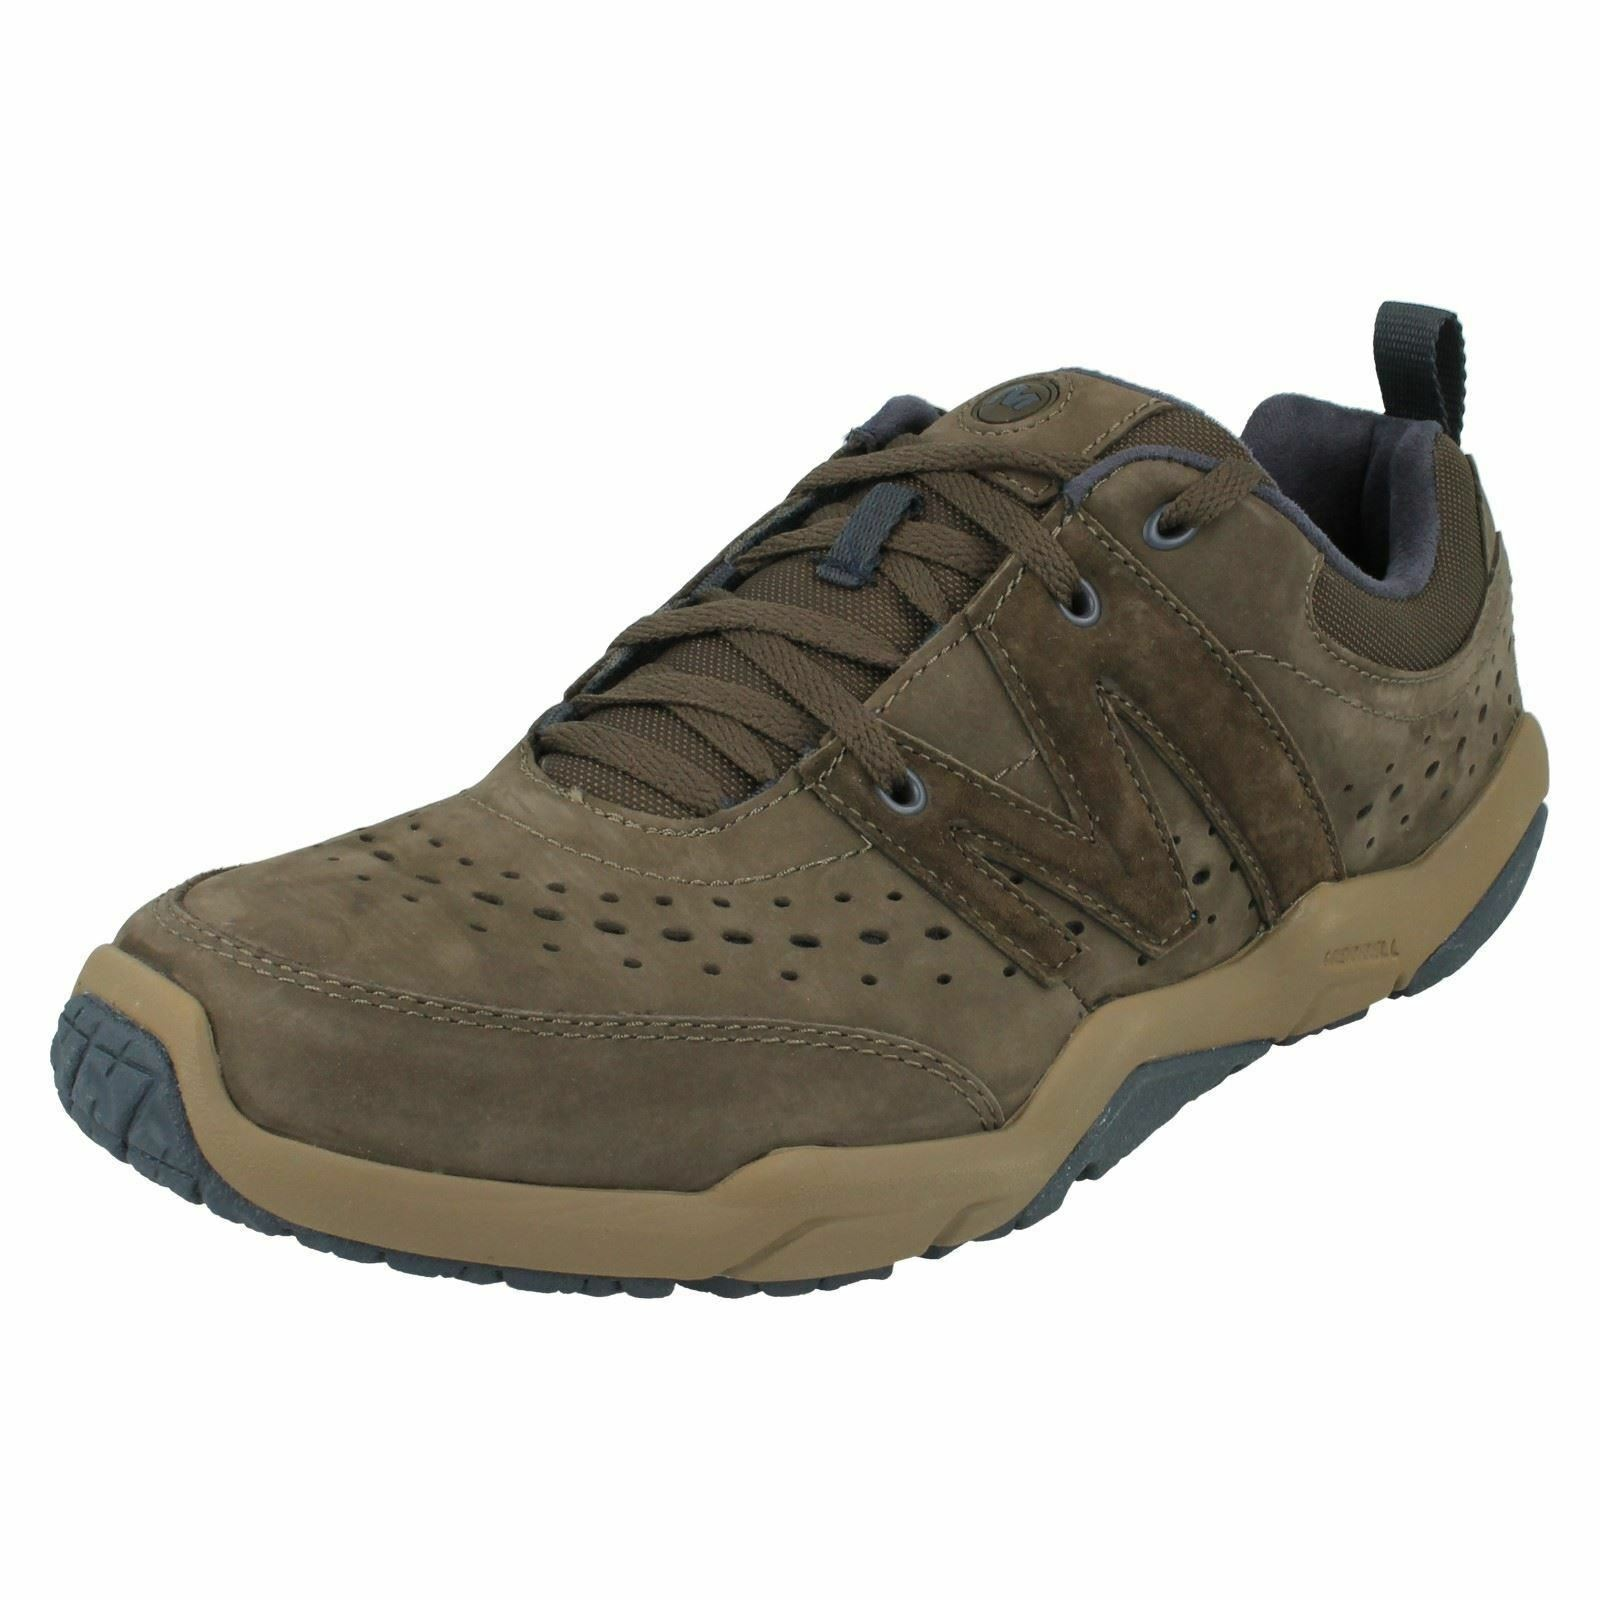 Mens Merrell Lace Up Casual Shoes Skylark J553251